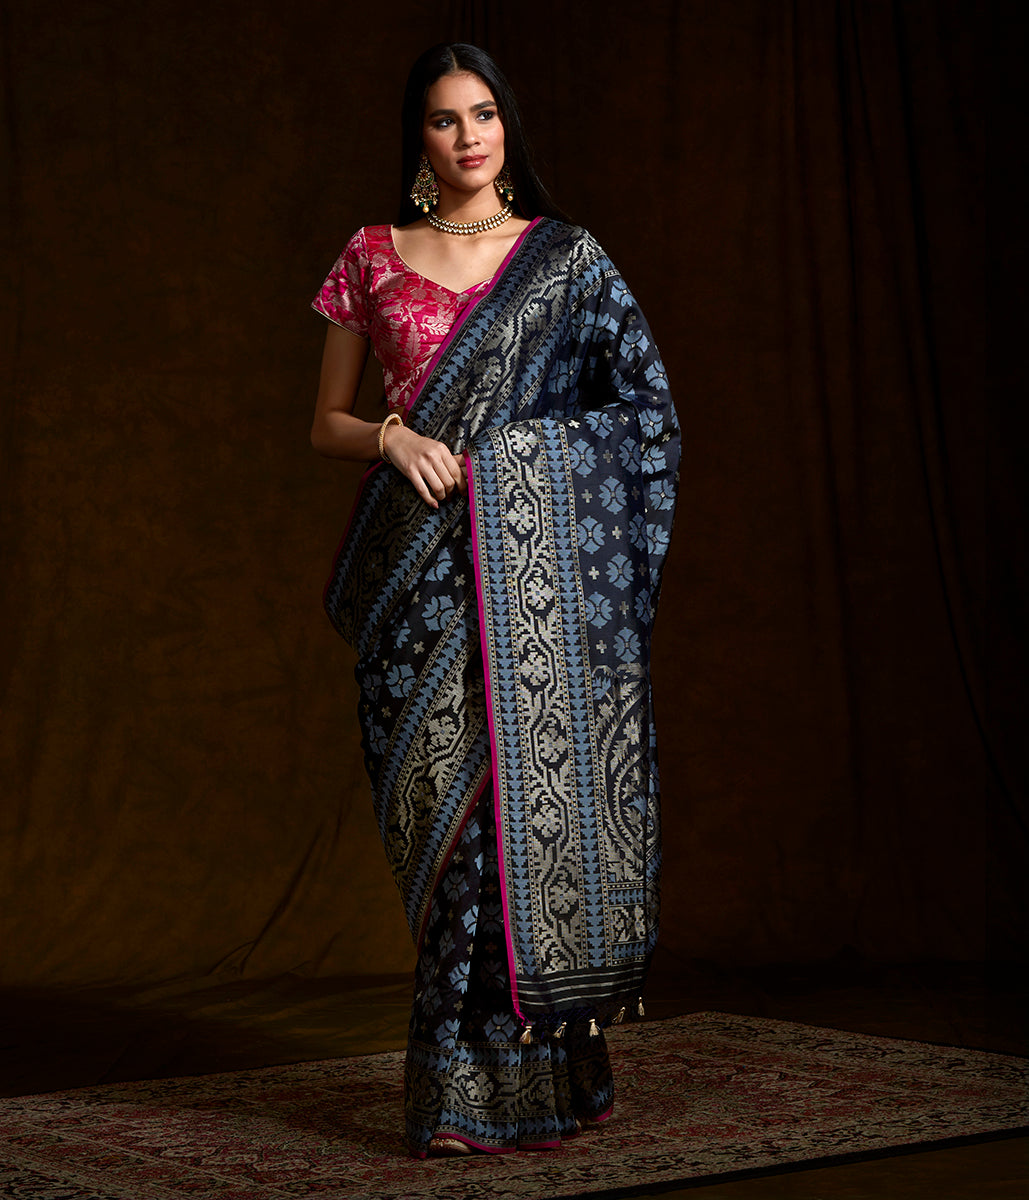 Black Handwoven banarasi cutwork patola saree with konia pallu